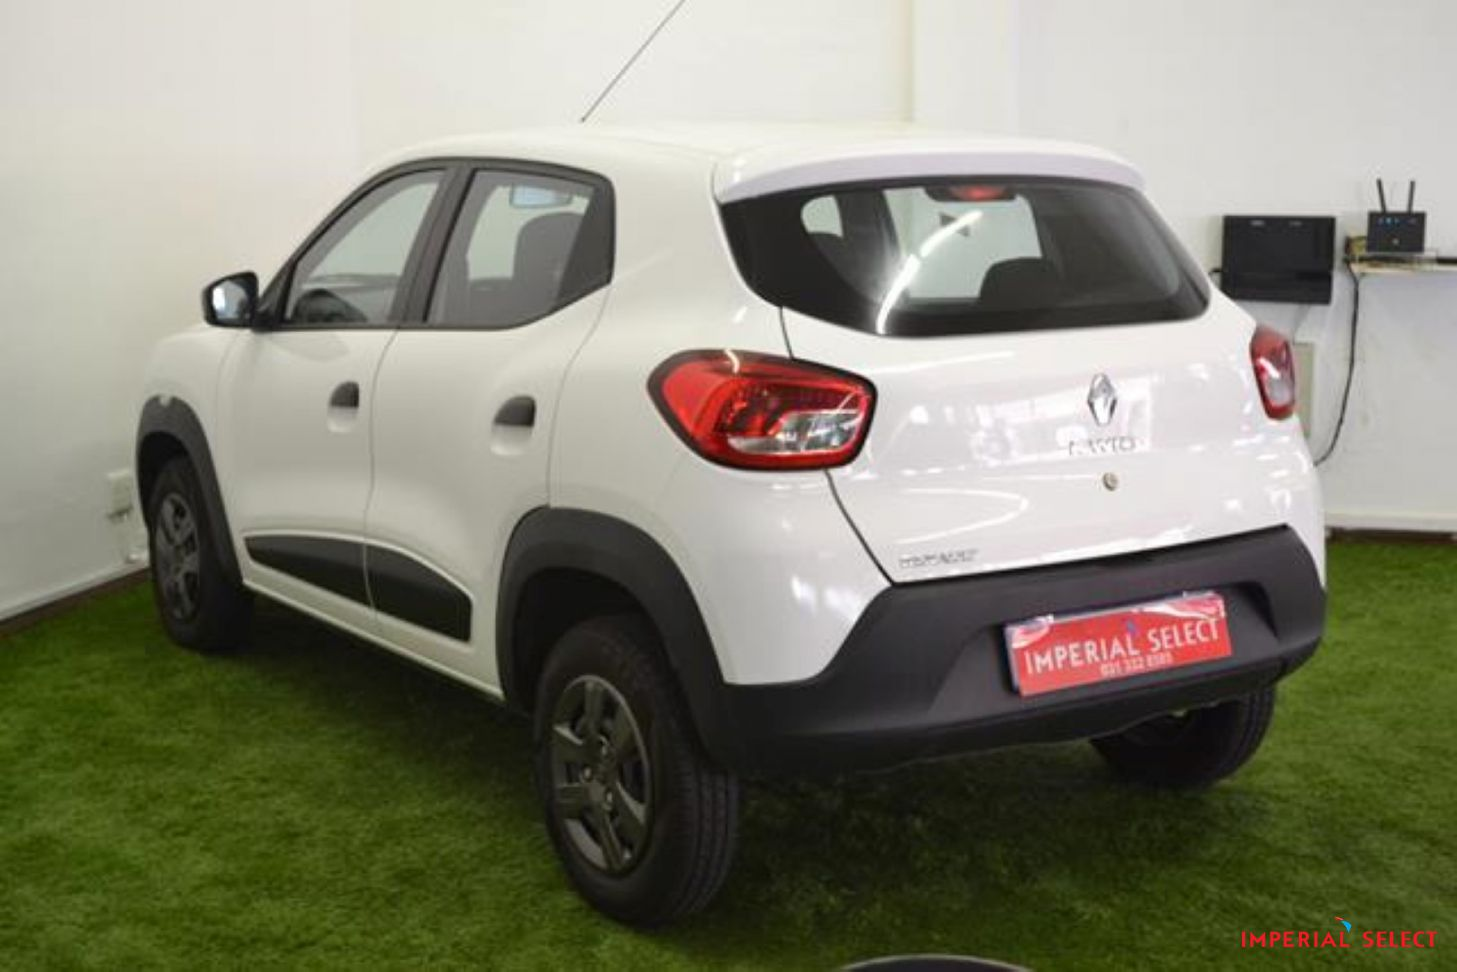 2017 Kwid 47kw Dynamique At Imperial Select Durban